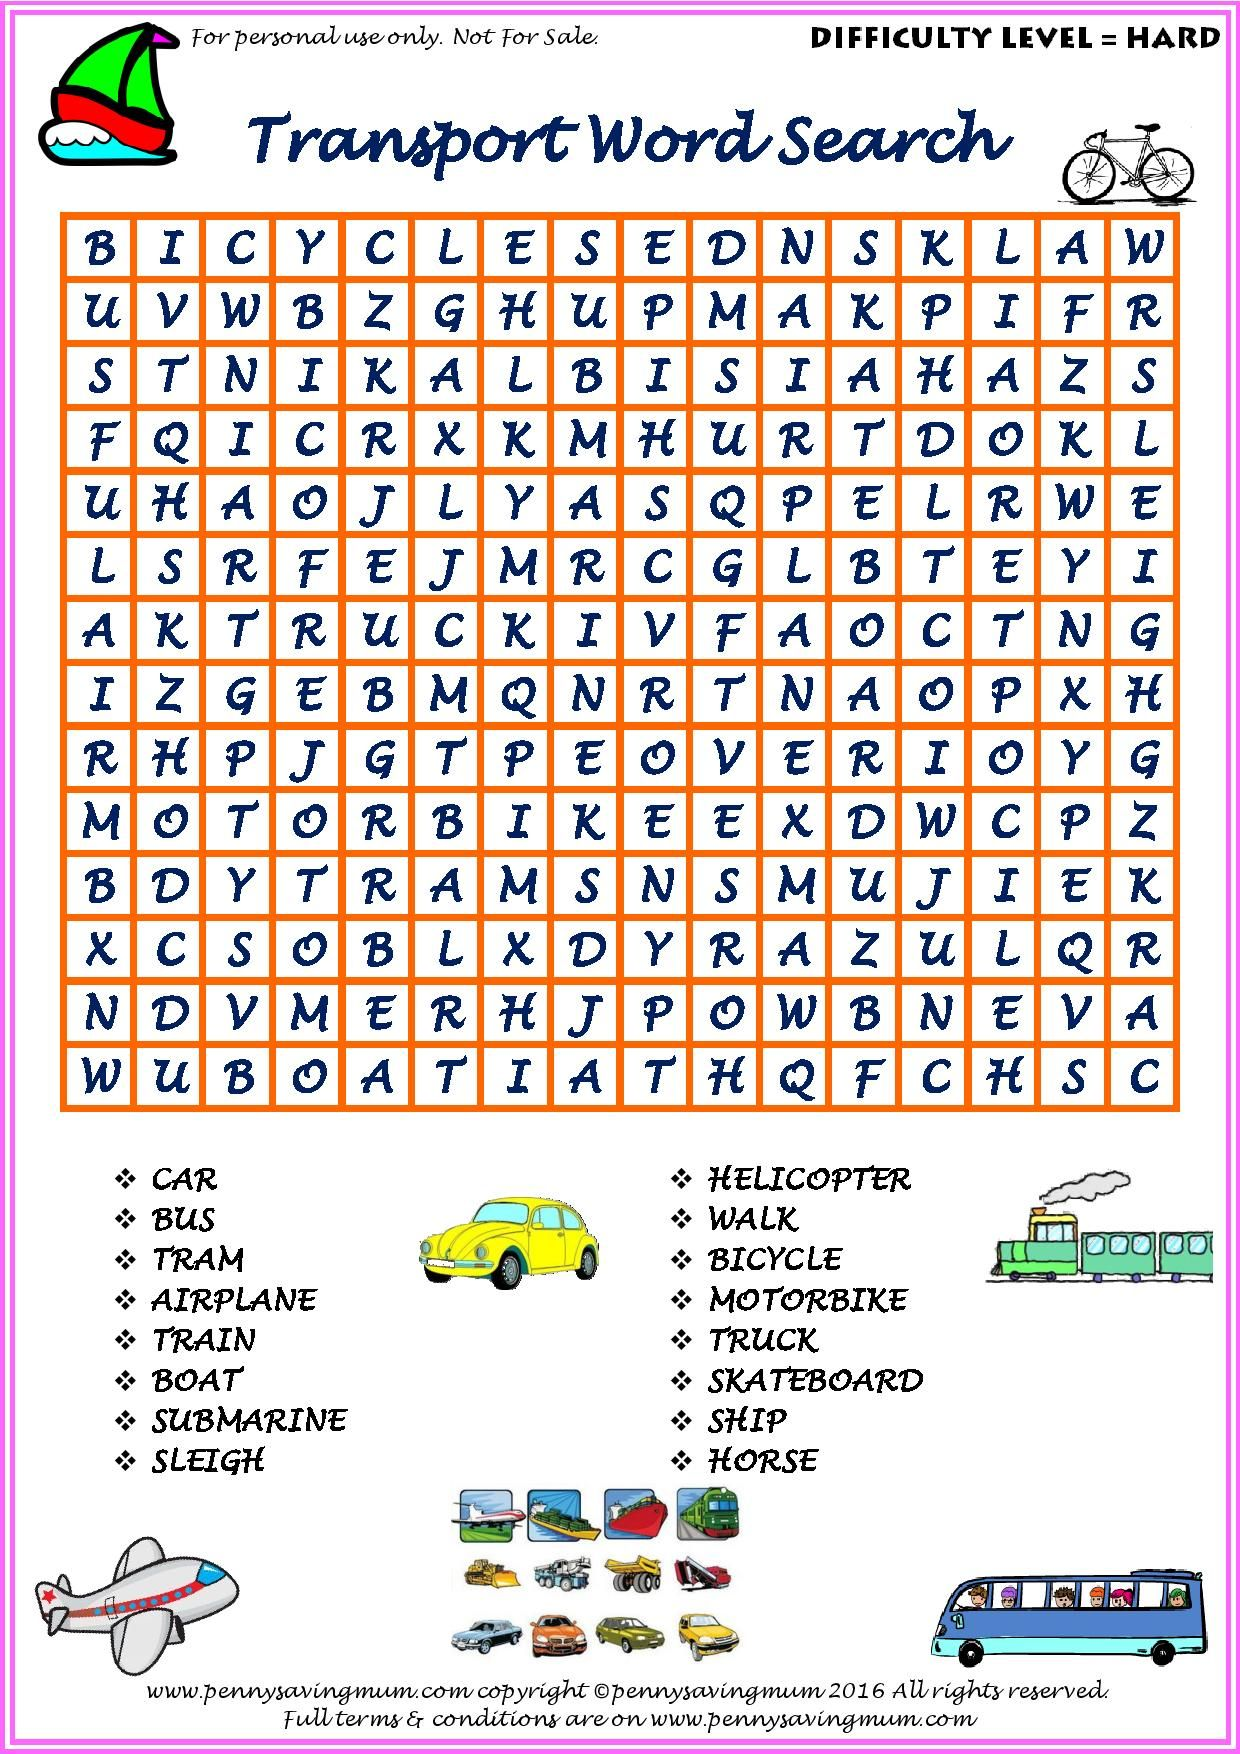 Word Search Transport Hard Version